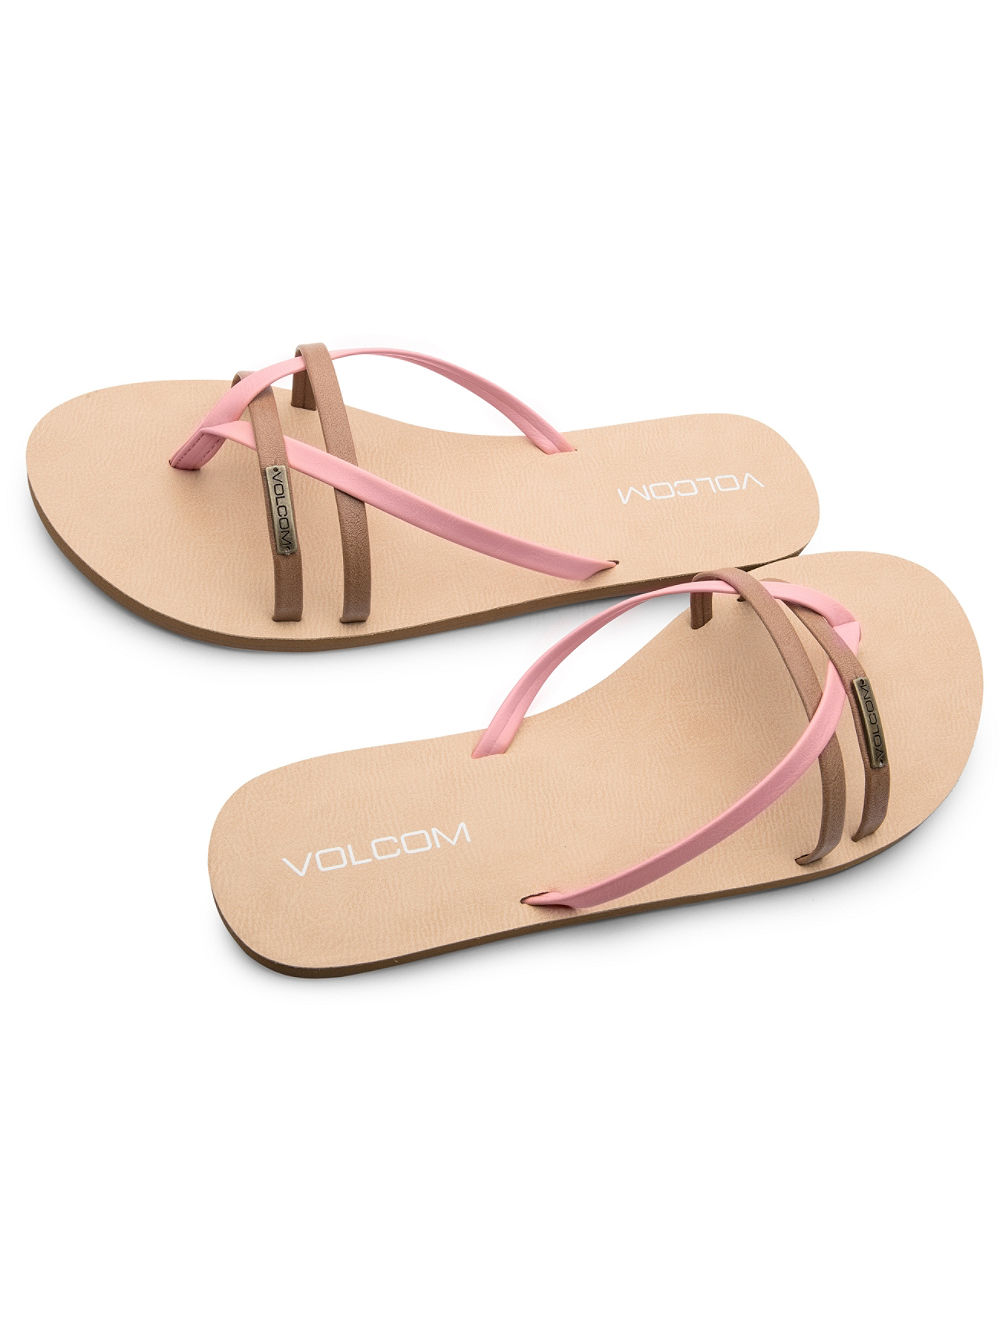 Lookout 2 Sandals Women